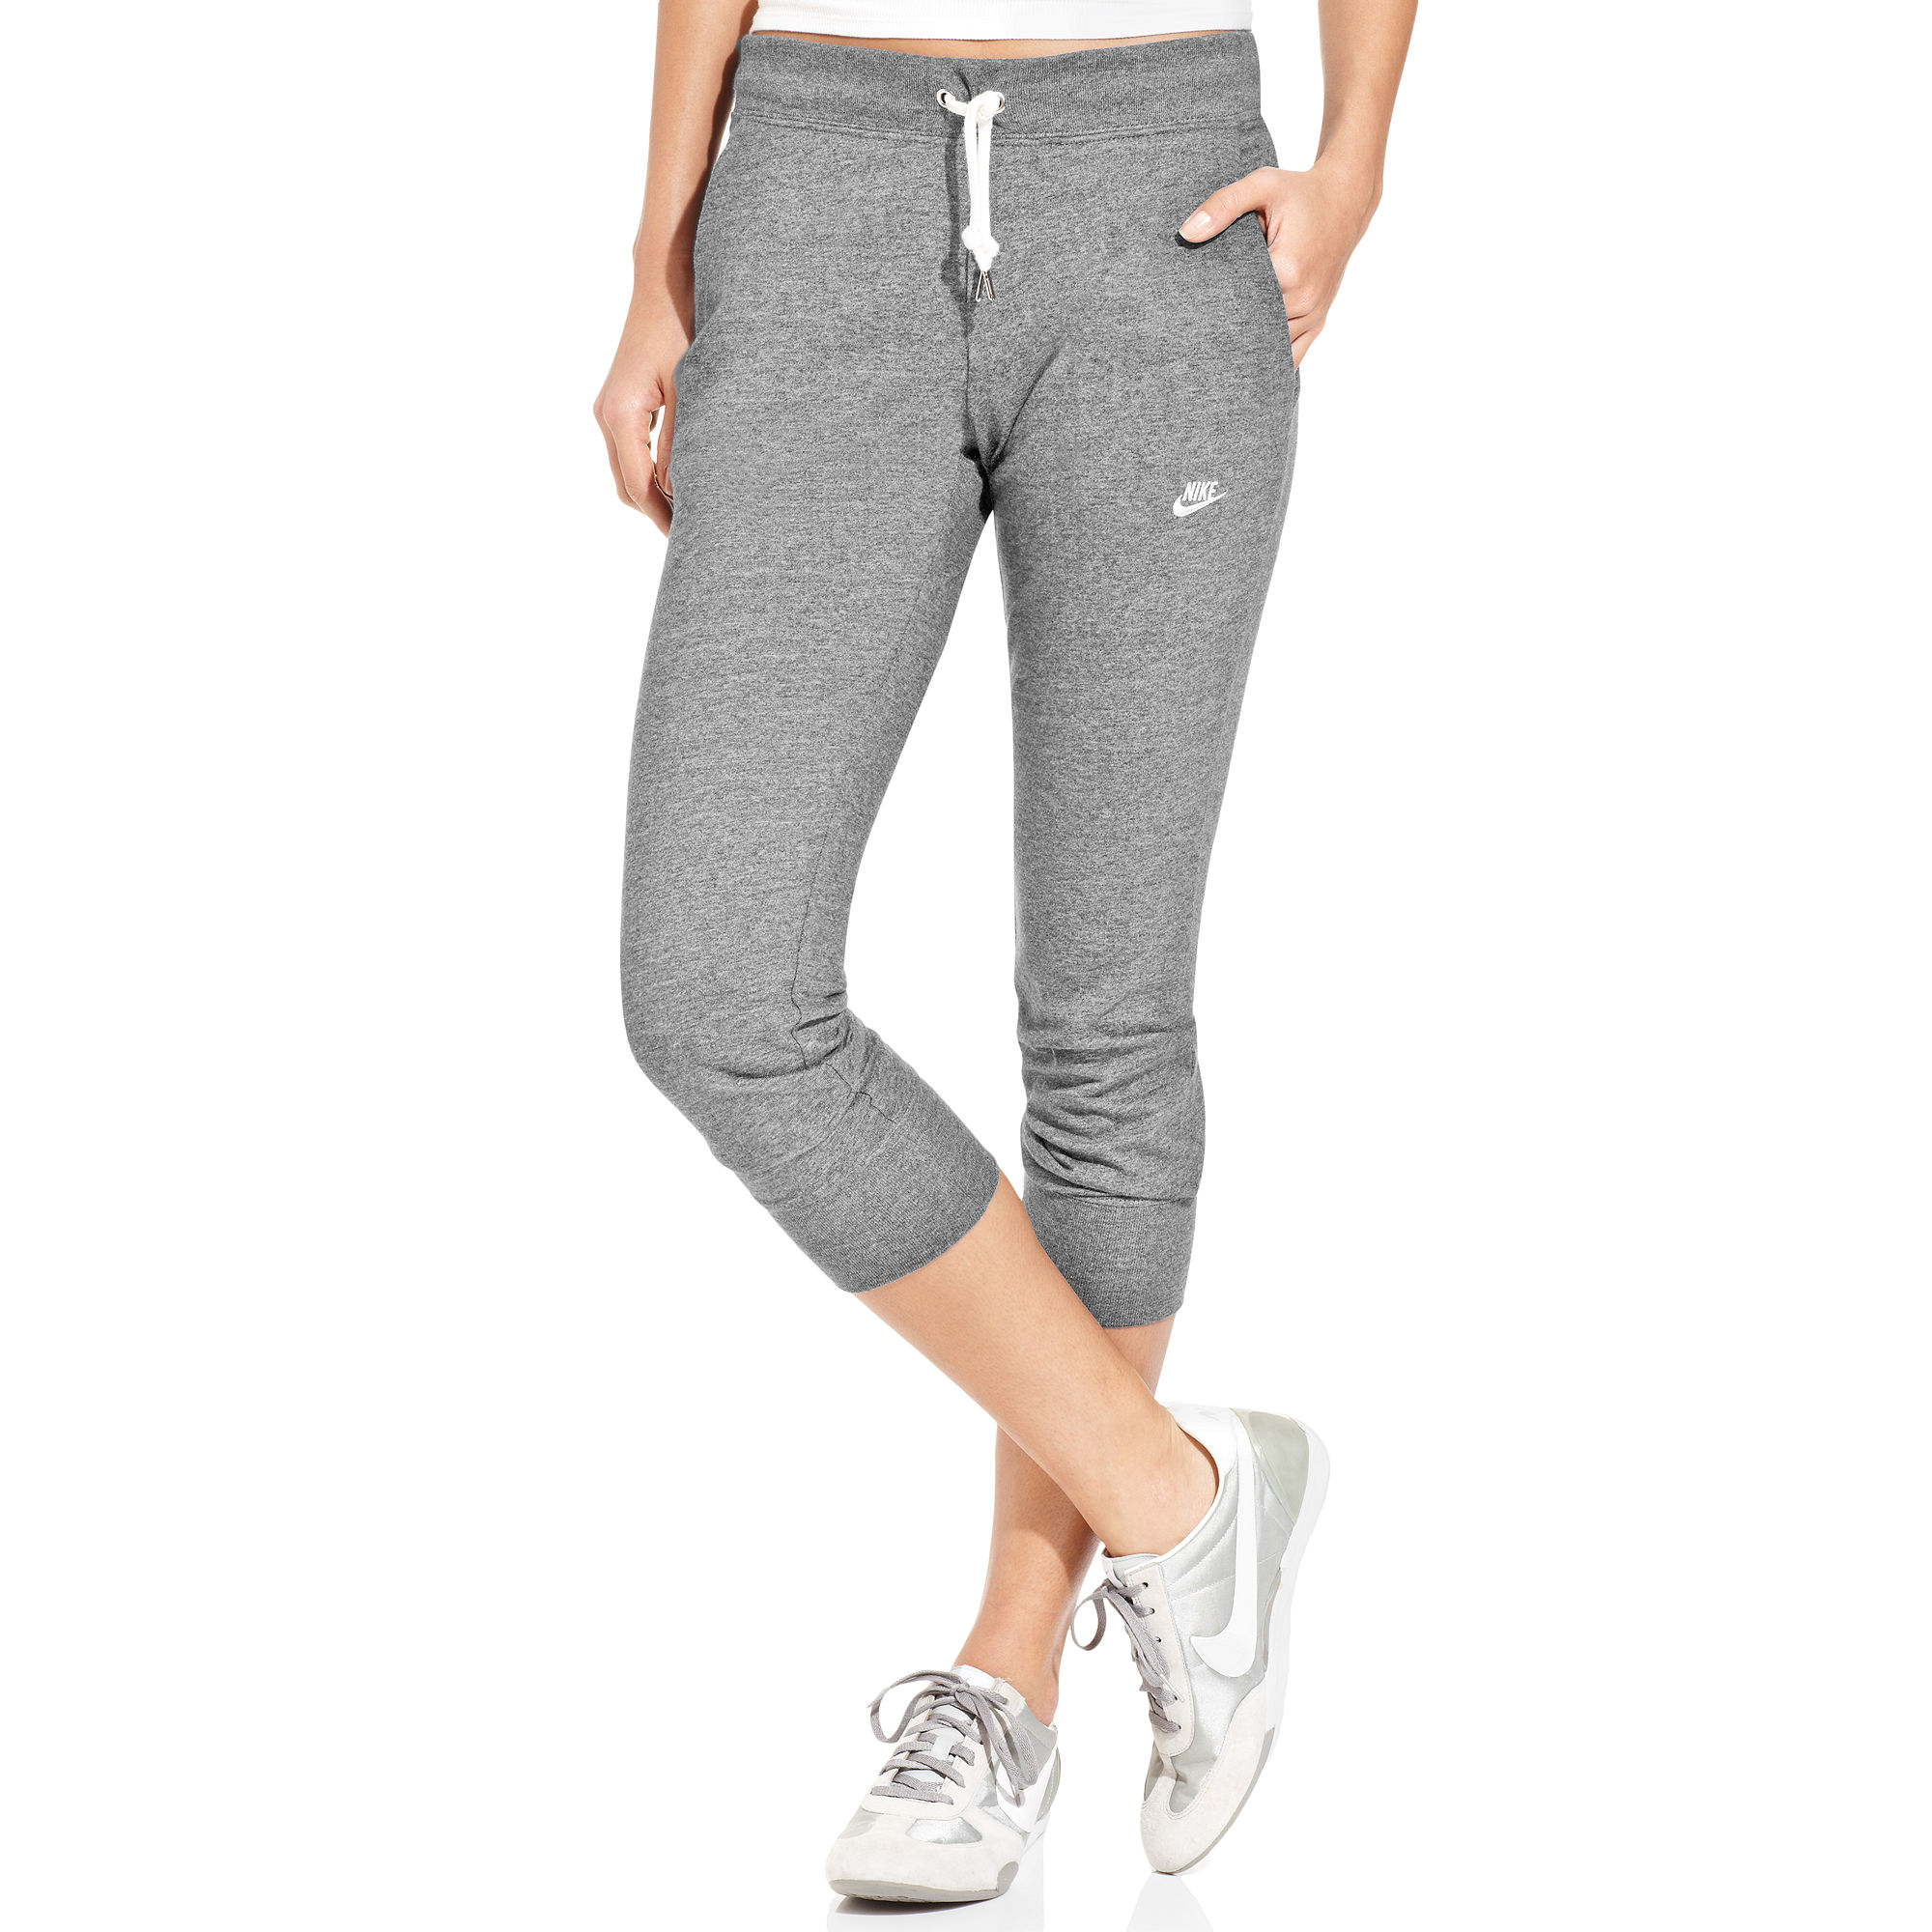 Popular Nike Sportswear Sweat Pants Grey Stripes Grey Sweatpants Beyonce